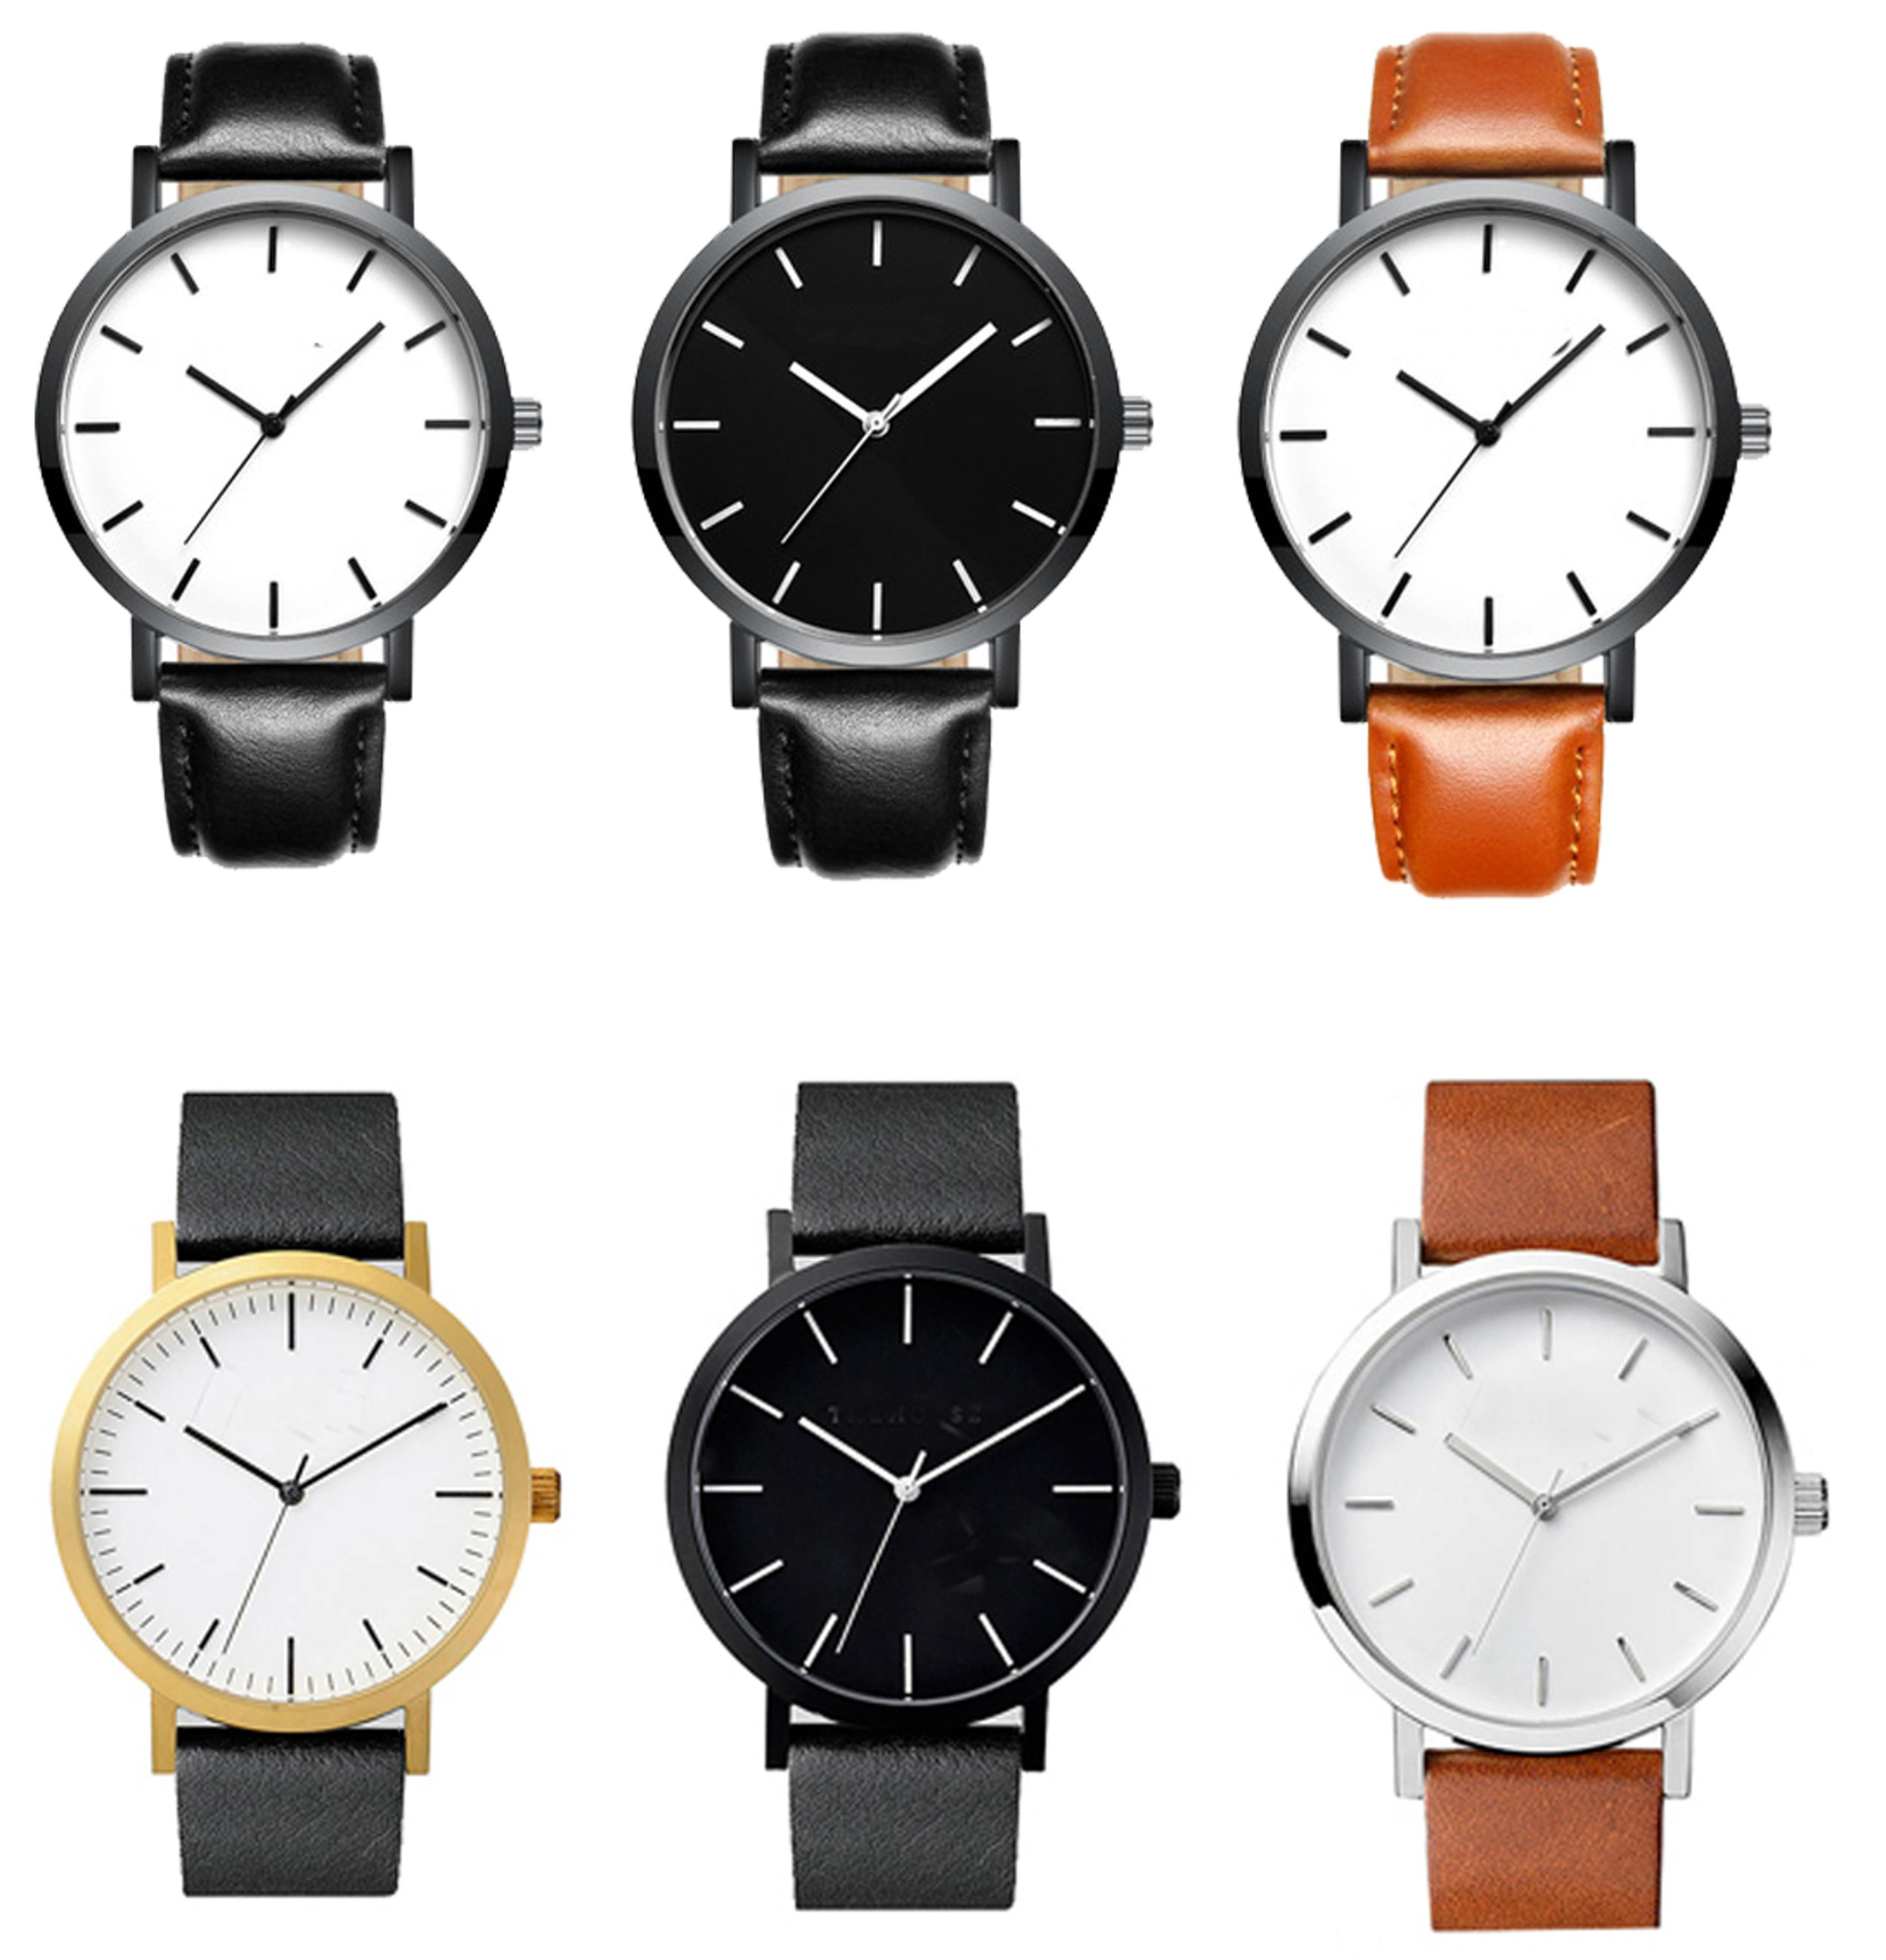 the watches of elegance at amazon uk meets by simple fashion boy